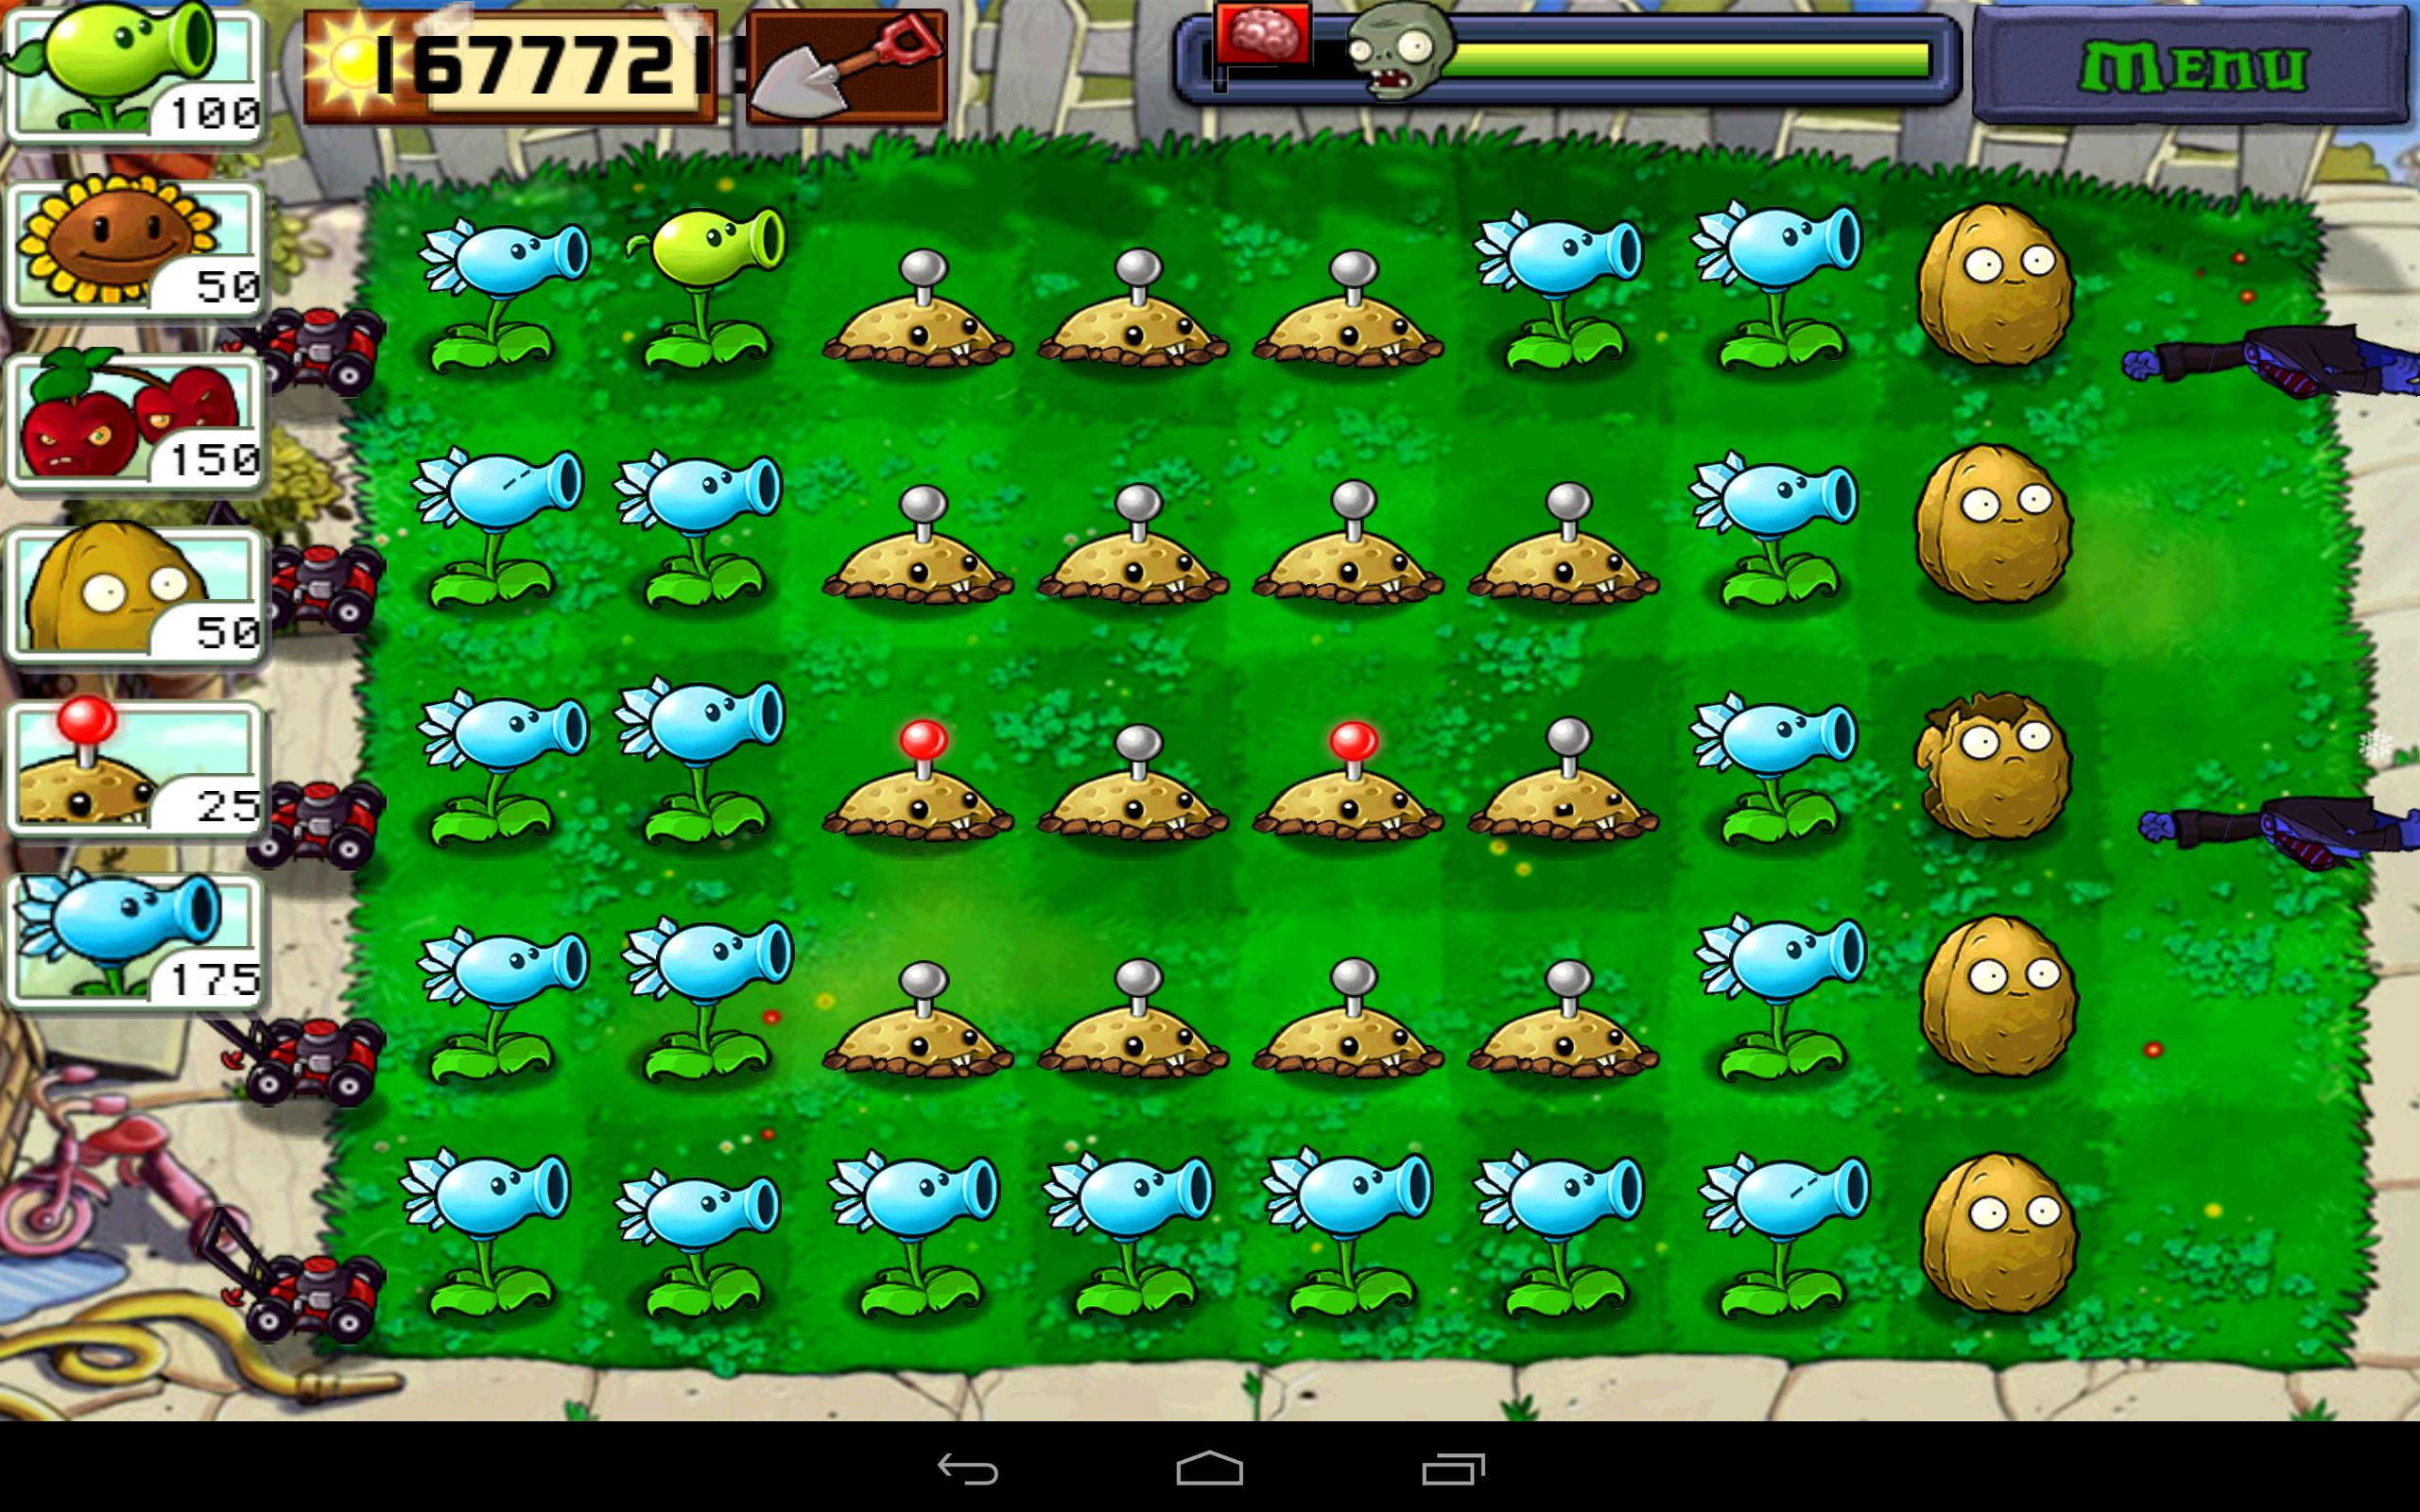 Plants Vs Zombies Free V 1 1 2 11 Apk Mod Apk Mod Hacks